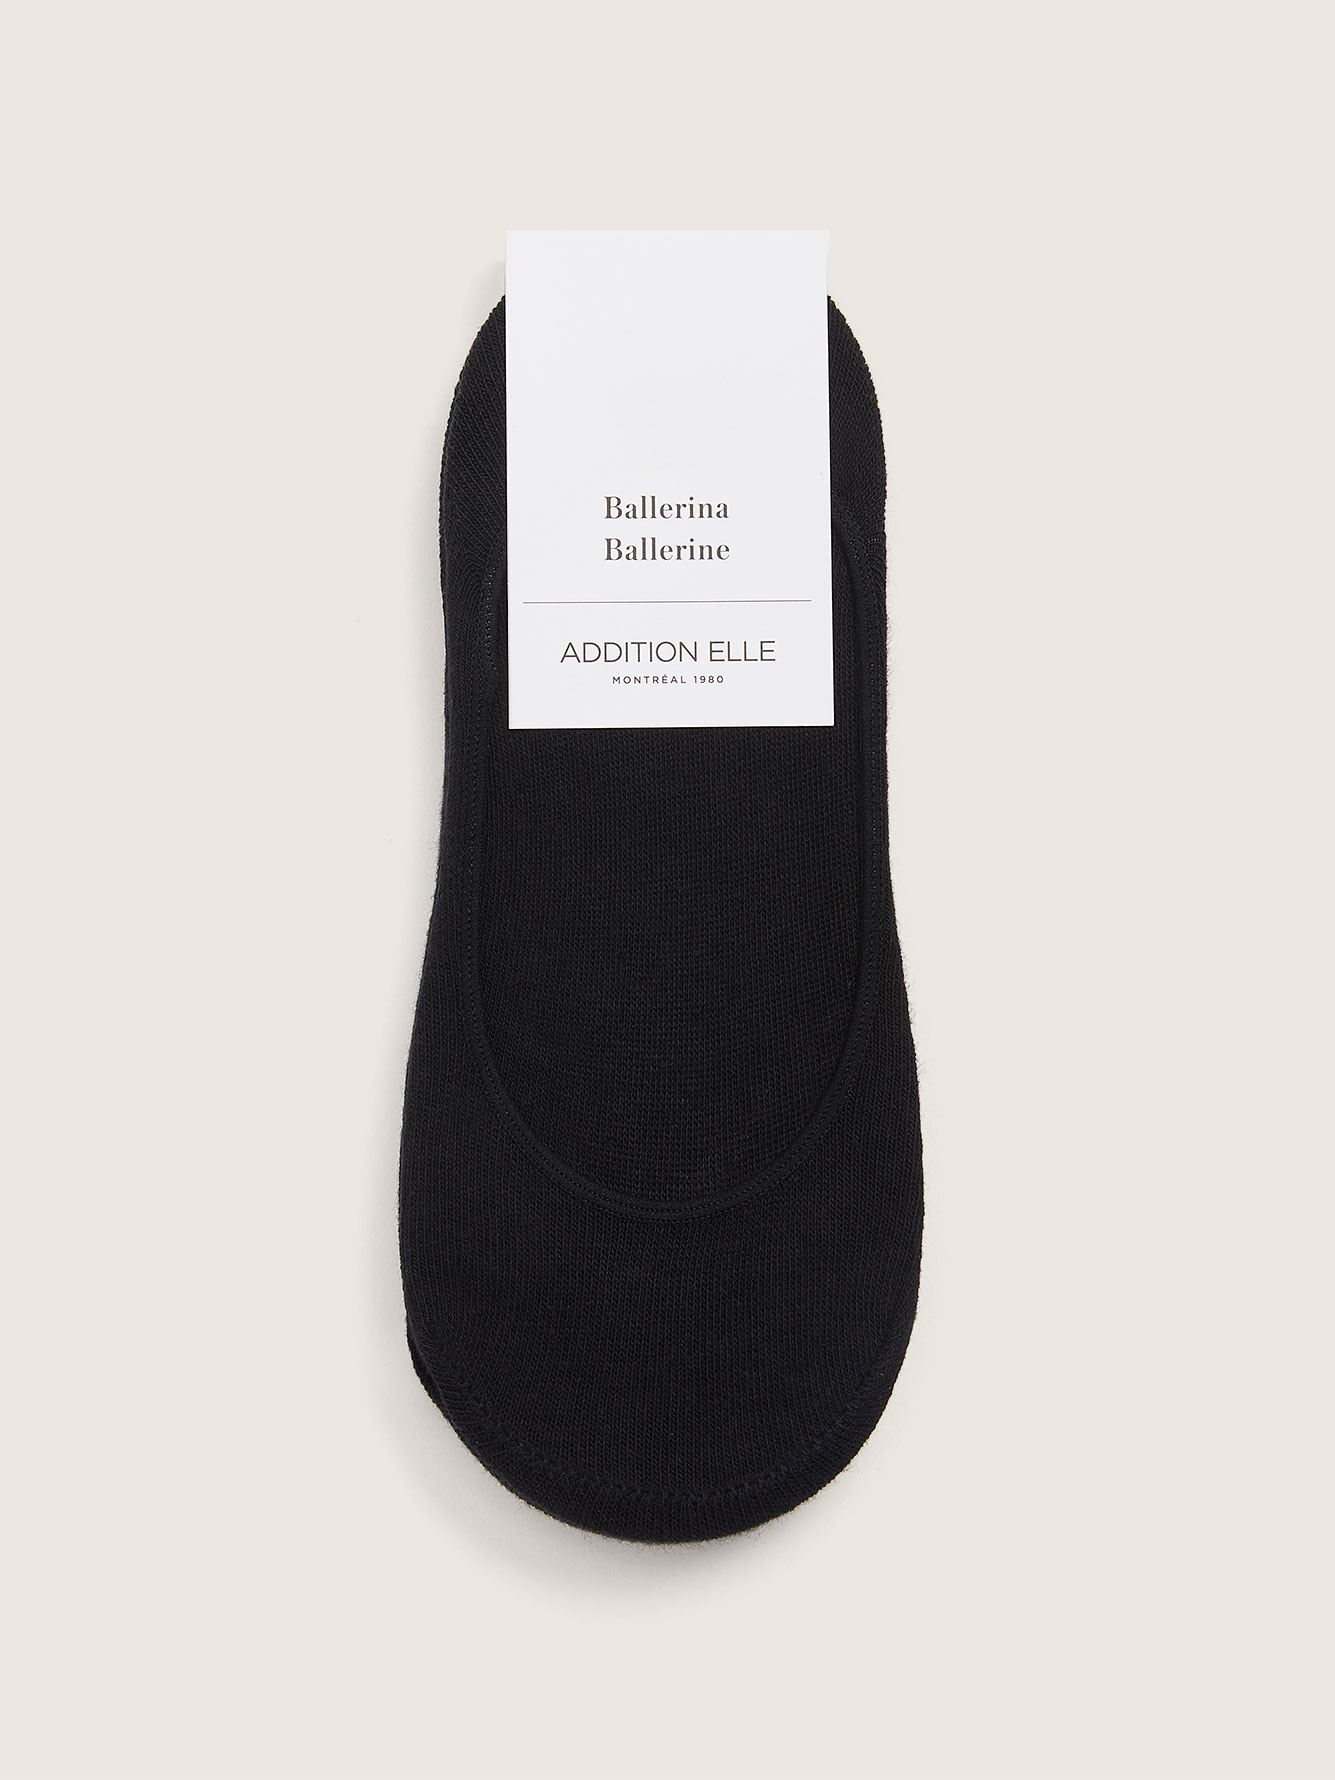 3 Pairs of Ballerina Socks - Addition Elle